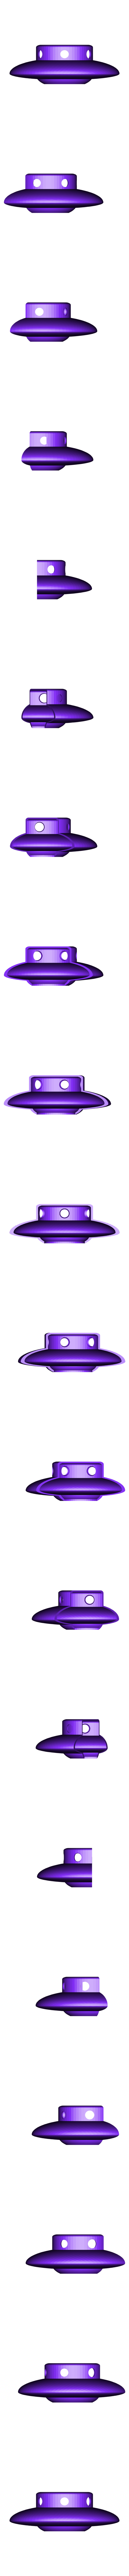 alien_abduction_lamp.stl Download free STL file alien abduction lamp • Model to 3D print, NohaBody